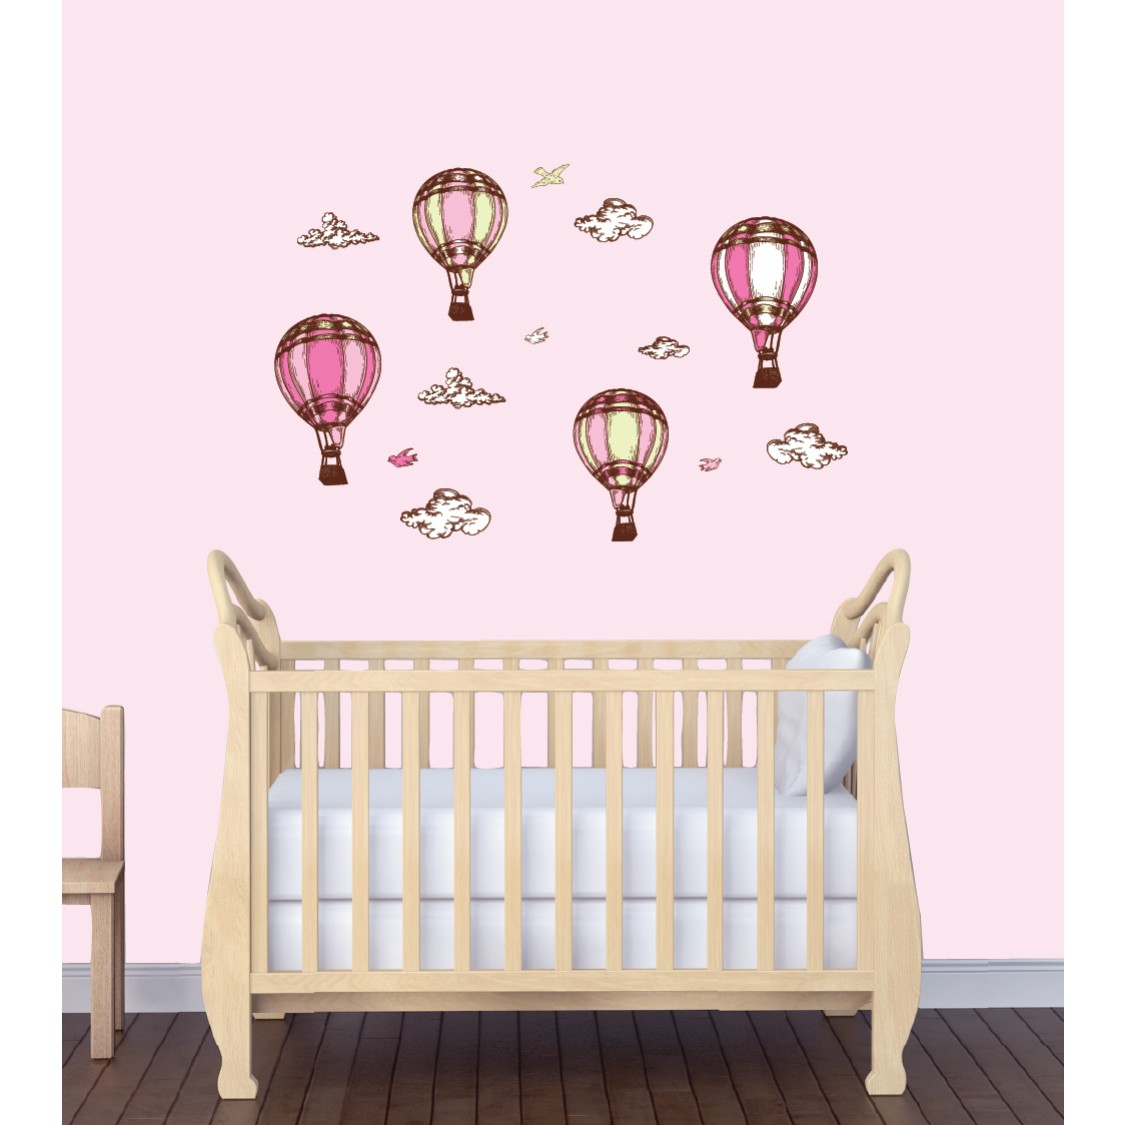 Large Wall Decal With Hot Air Balloon Wall Decor For Kids